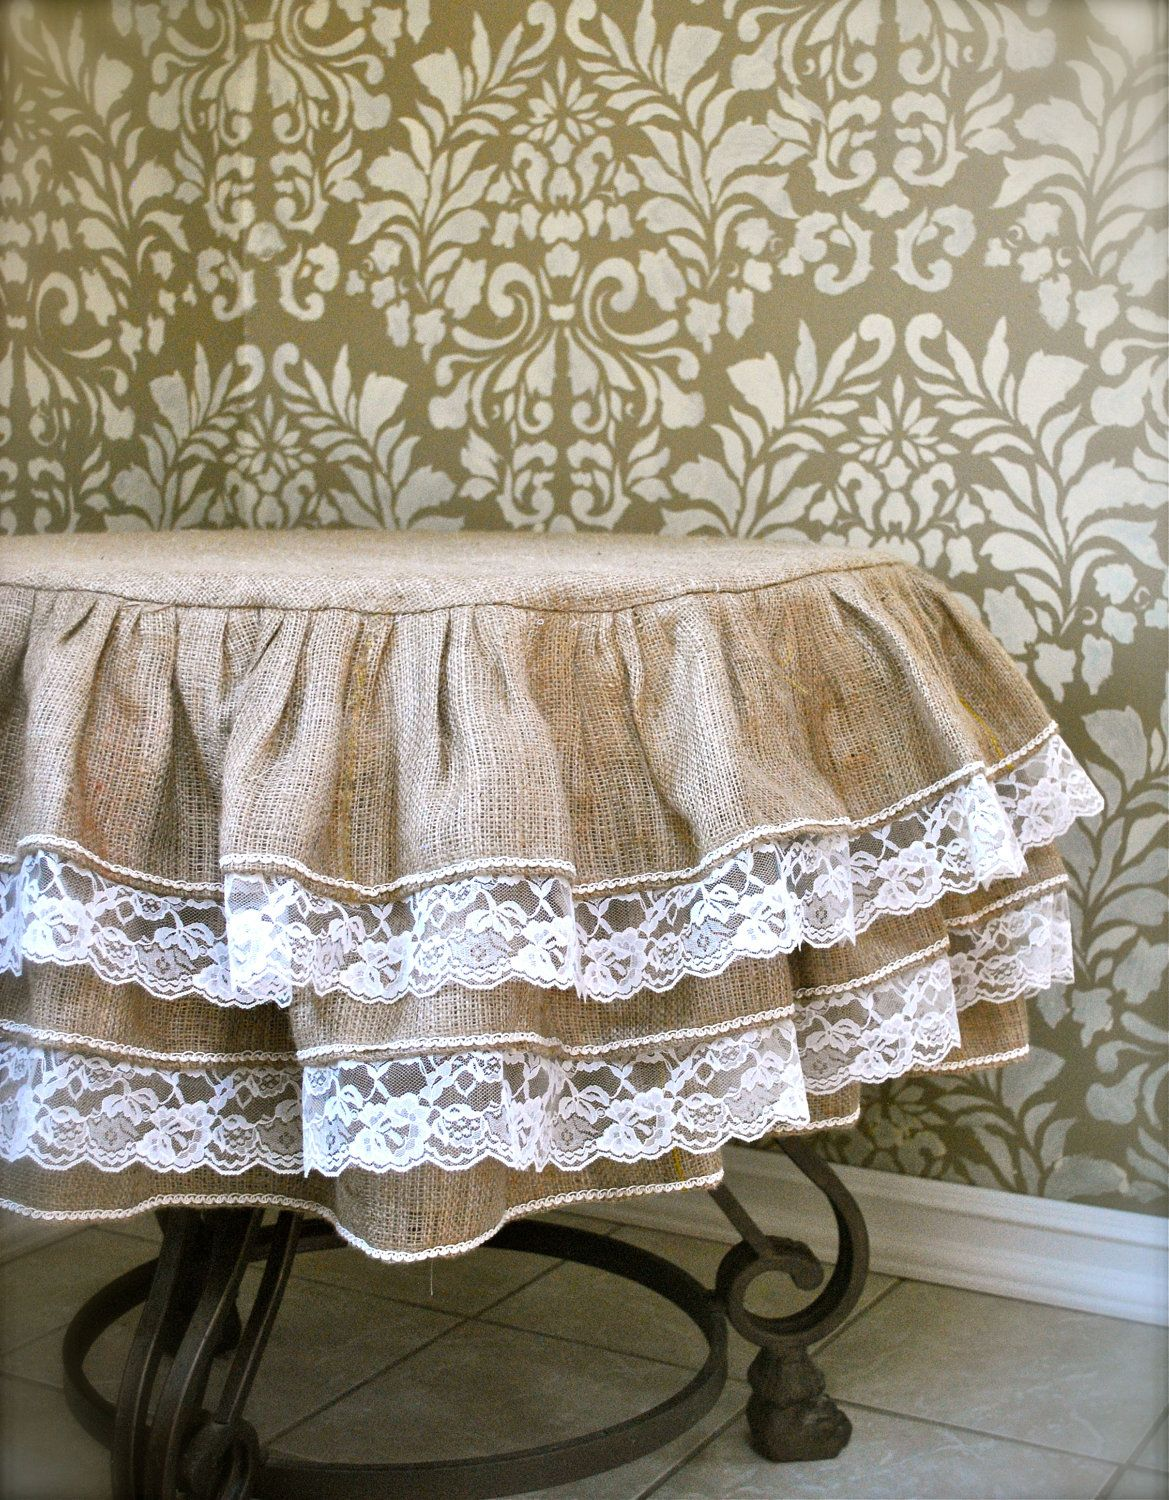 Delicieux Sweetheart Table Burlap And Lace Ruffle Tablecloth. $90.00, Via Etsy.